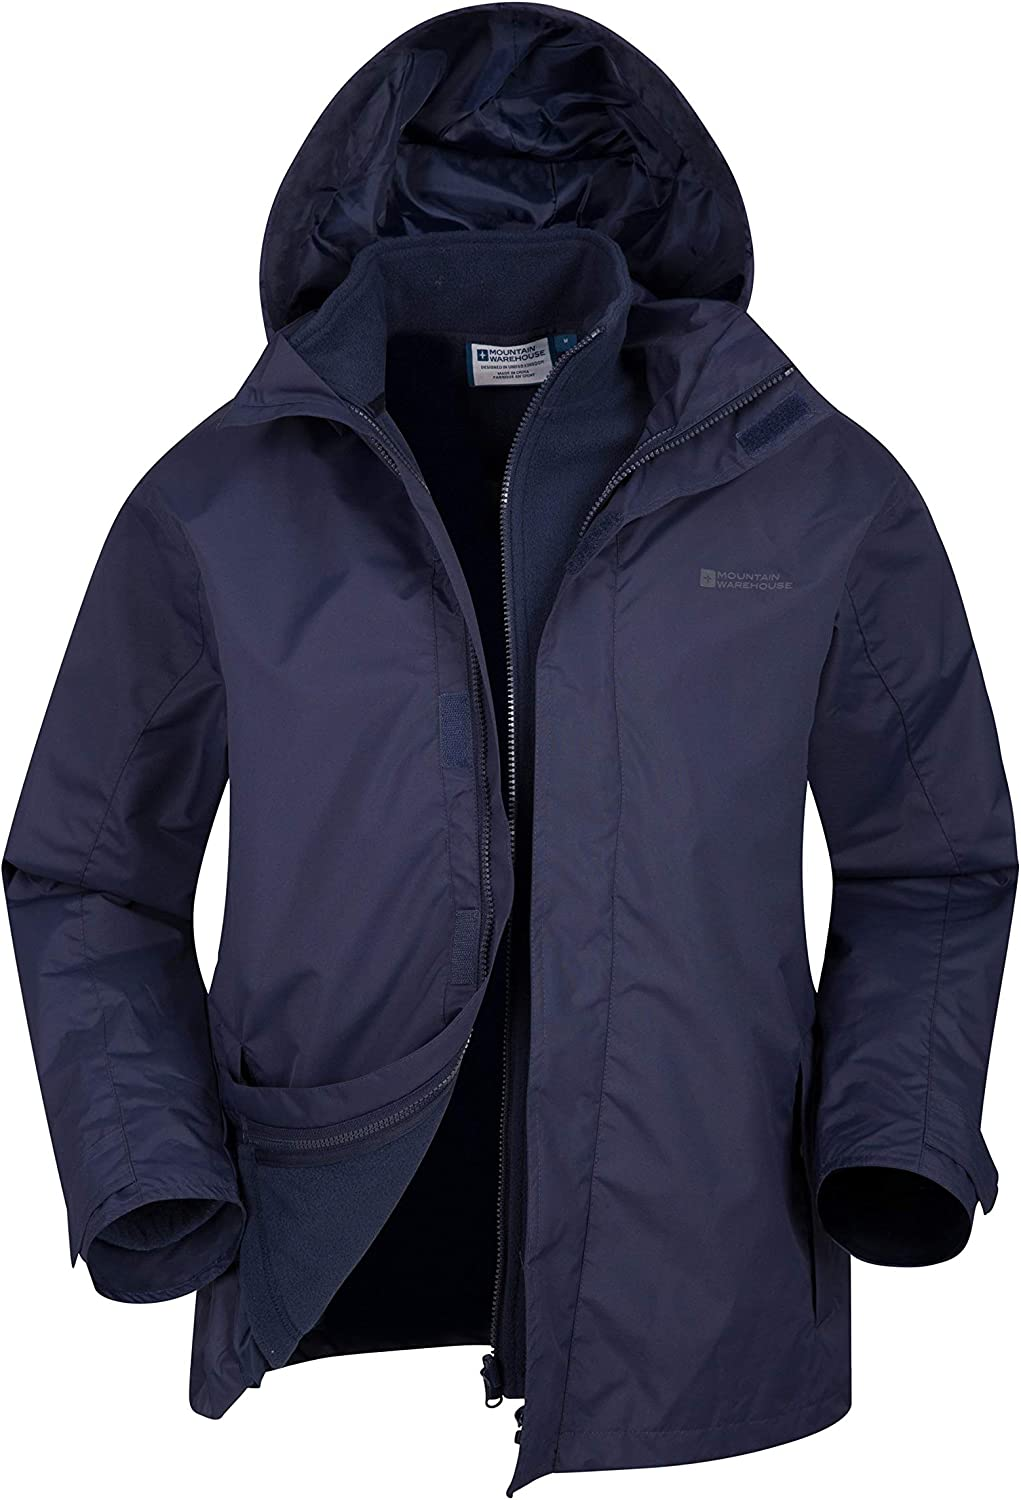 Mountain Warehouse Fell Mens 3 in 1 Water Resistant Jacket - Winter